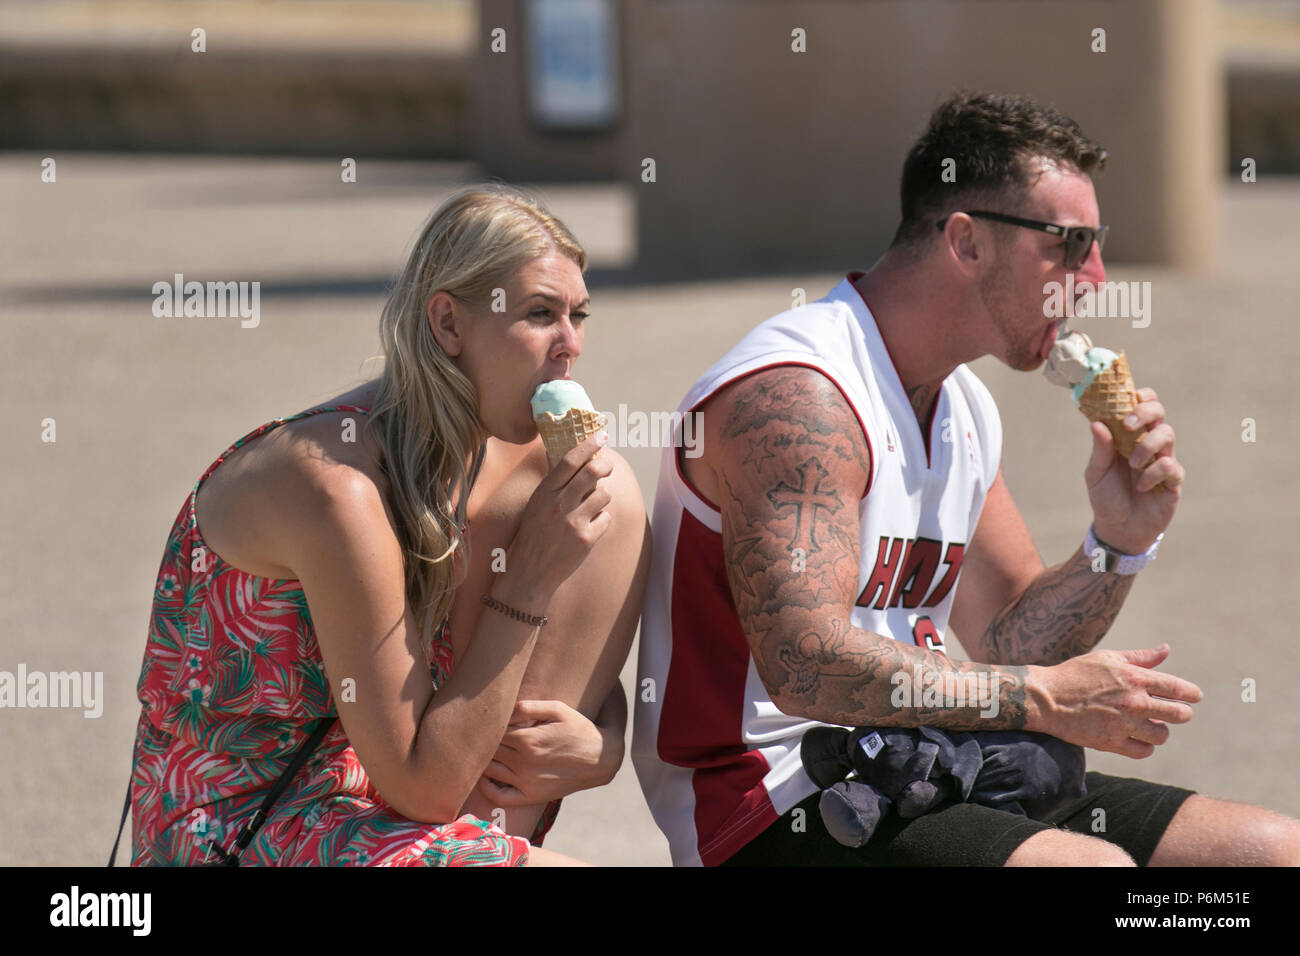 Blackpool, Lancashire, 1st Jul, 2018. UK Weather: Sunny sweltering day at the coast as sun worshippers enjoy spell on the beach before being chased by the incoming tide. Credit: MediaWorldImages/AlamyLiveNews Stock Photo